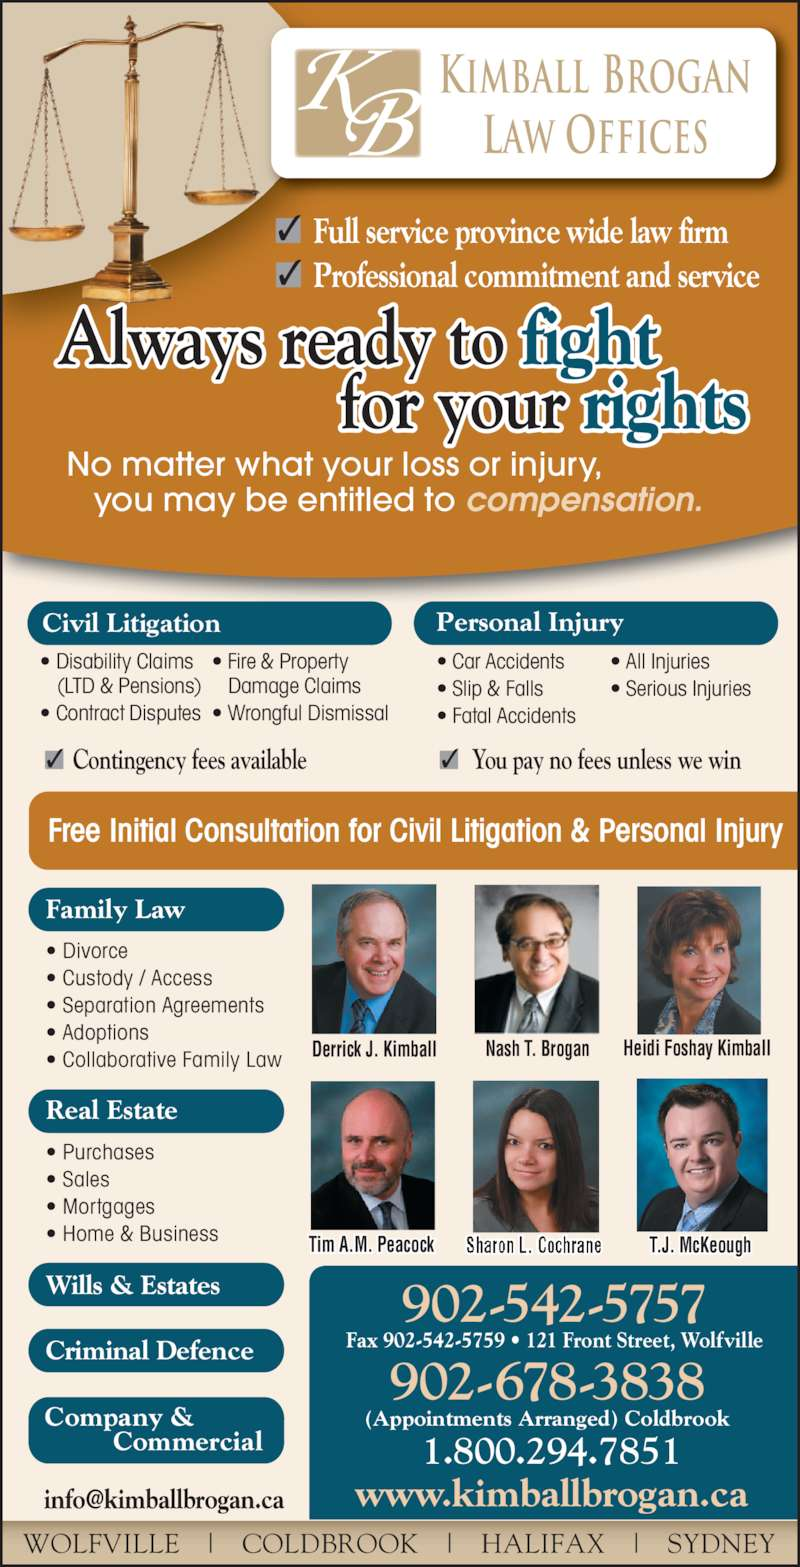 Kimball Brogan Barristers & Solicitors (902-542-5757) - Display Ad - Derrick J. Kimball Nash T. Brogan Heidi Foshay Kimball Sharon L. CochraneTim A.M. Peacock T.J. McKeough No matter what your loss or injury,    you may be entitled to compensation. Kimball Brogan Law Offices Free Initial Consultation for Civil Litigation & Personal Injury Civil Litigation • Disability Claims    (LTD & Pensions) • Contract Disputes • Fire & Property    Damage Claims • Wrongful Dismissal Personal Injury • Car Accidents • Slip & Falls • Fatal Accidents • All Injuries • Serious Injuries • Divorce • Custody / Access • Separation Agreements • Adoptions • Collaborative Family Law Real Estate • Purchases • Sales • Mortgages • Home & Business Full service province wide law firm✓ Professional commitment and service✓ Contingency fees available You pay no fees unless we win✓ ✓ WOLFVILLE   |   COLDBROOK   |   HALIFAX   |   SYDNEY 1.800.294.7851 902-542-5757 Fax 902-542-5759 • 121 Front Street, Wolfville 902-678-3838 (Appointments Arranged) Coldbrook Wills & Estates Criminal Defence Family Law Company &          Commercial Always ready to fight                 for your rights